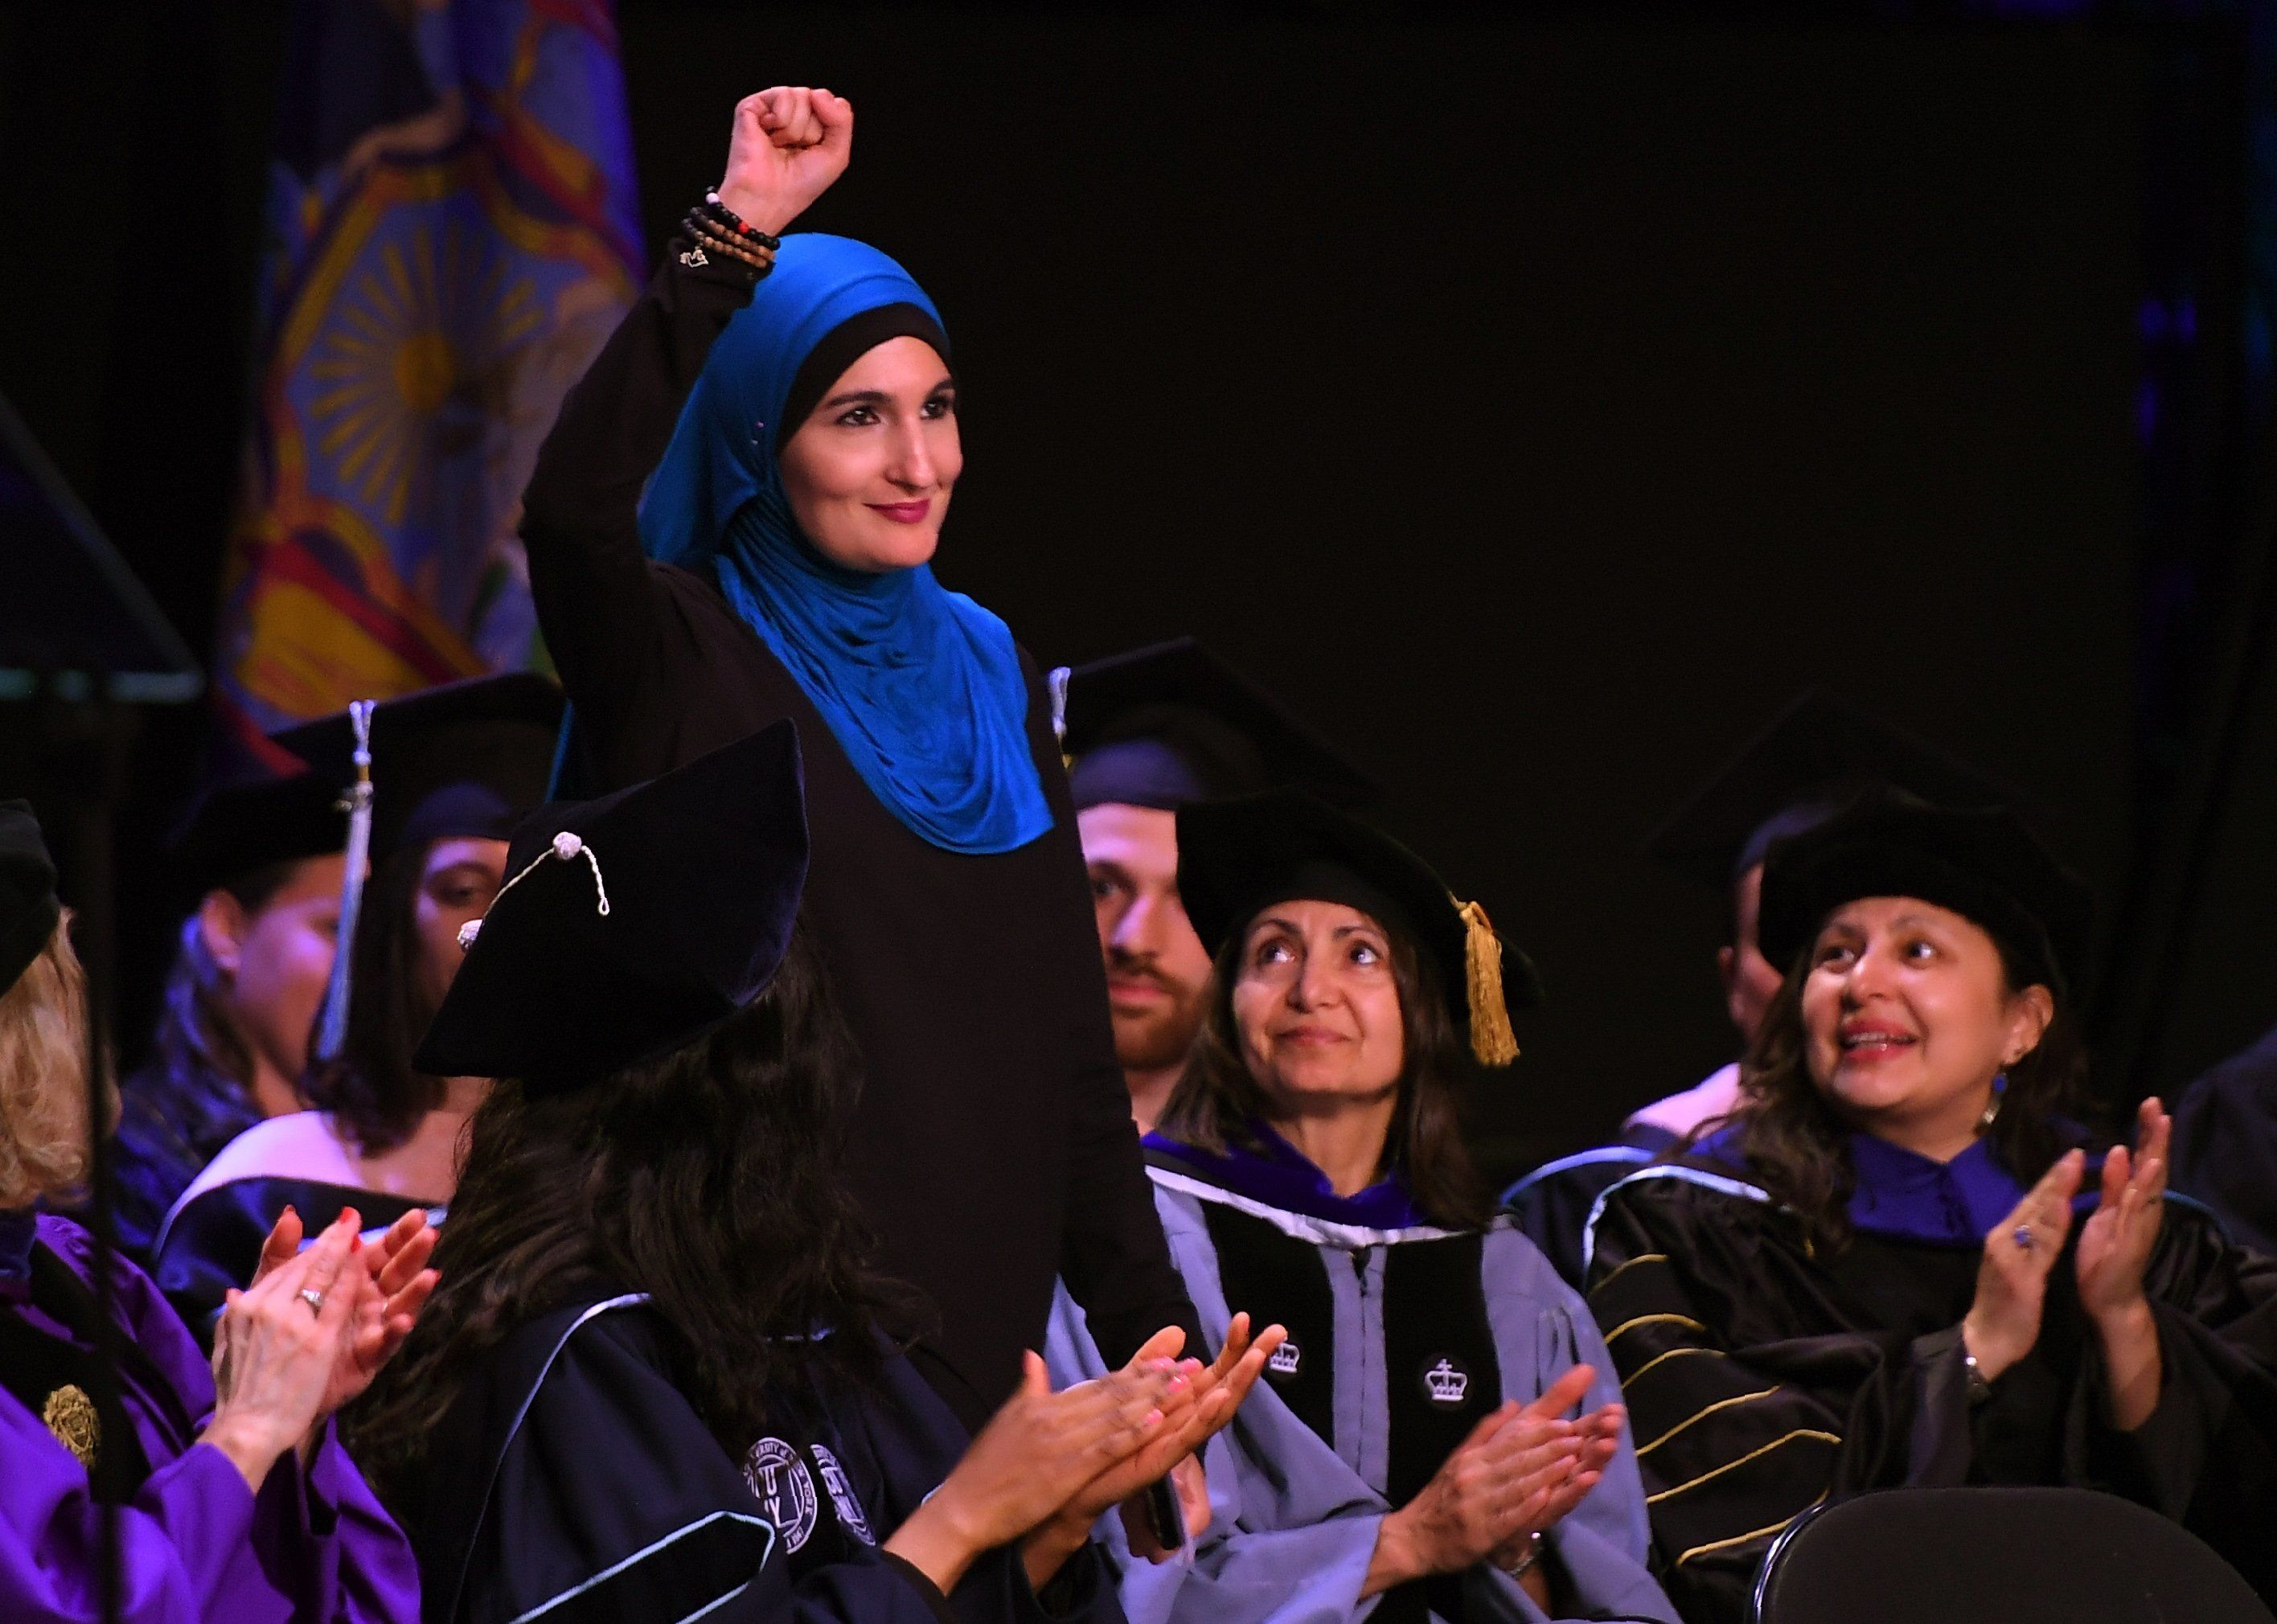 Linda Sarsour raises her fist as she walks to the stage as the keynote speaker at the CUNY Graduate School of Public Healths